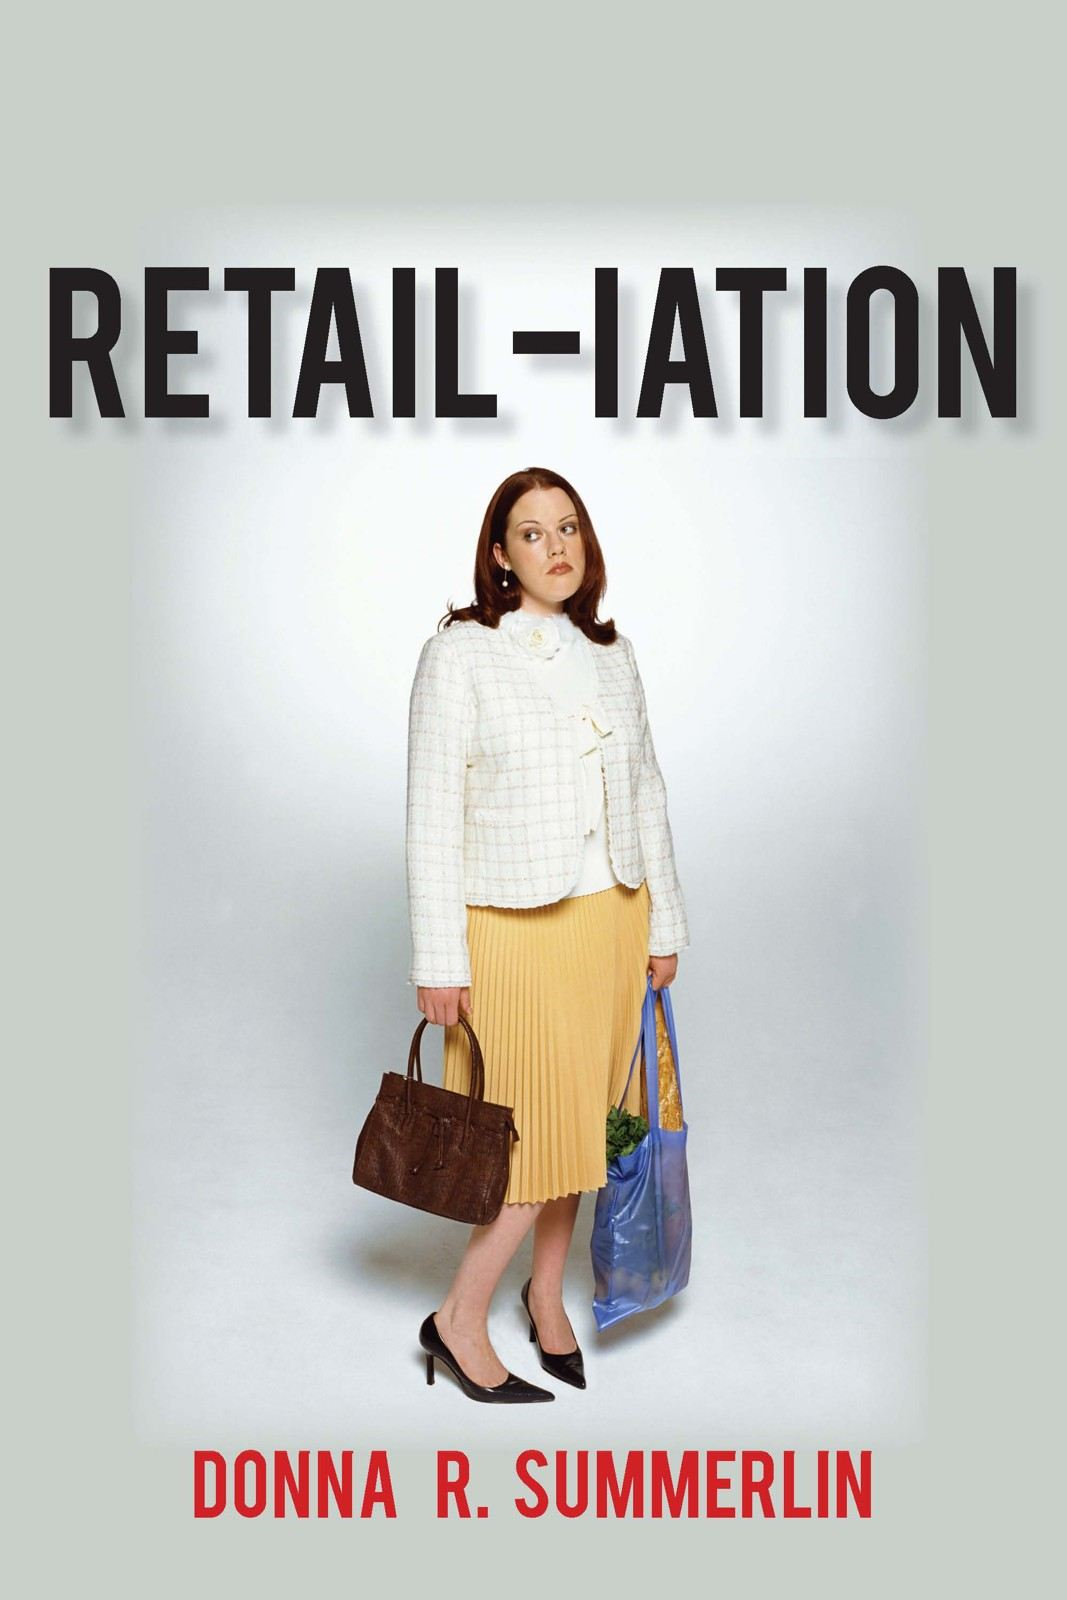 RETAIL-iation